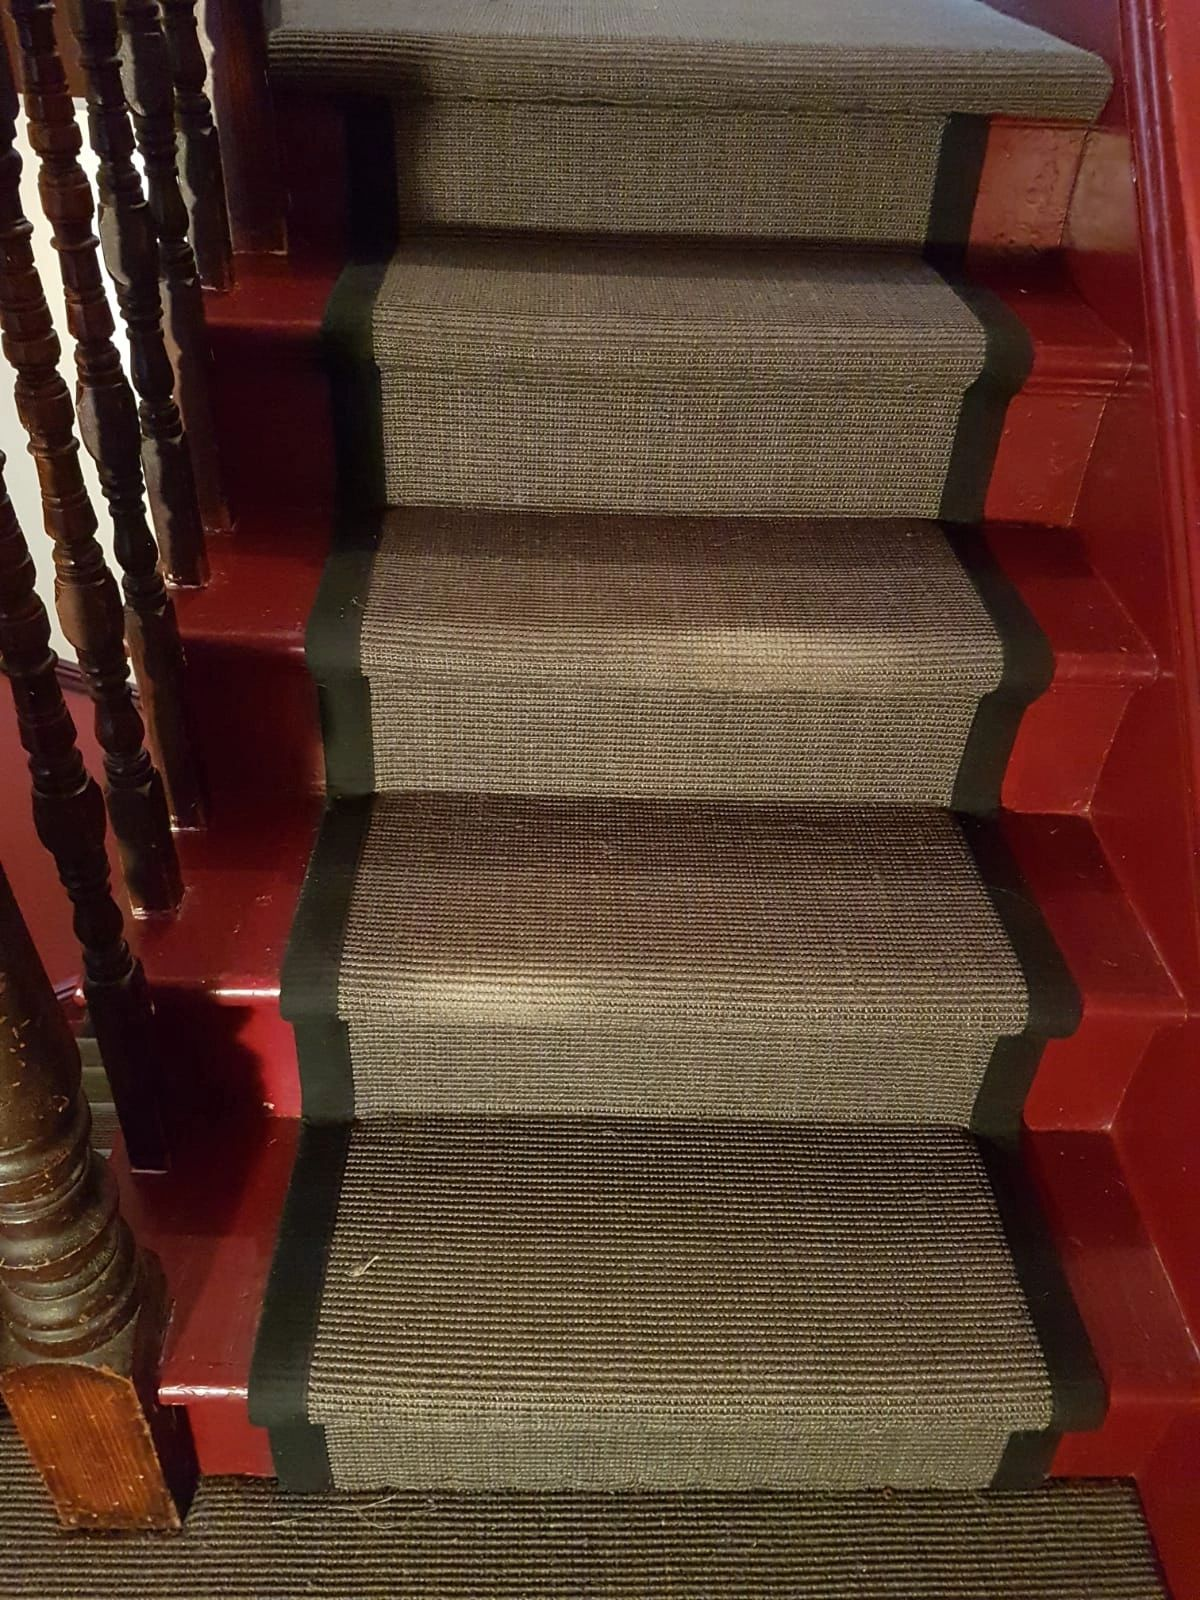 We Can Repair Your Customer's Carpet / Your Contractor's Mistake